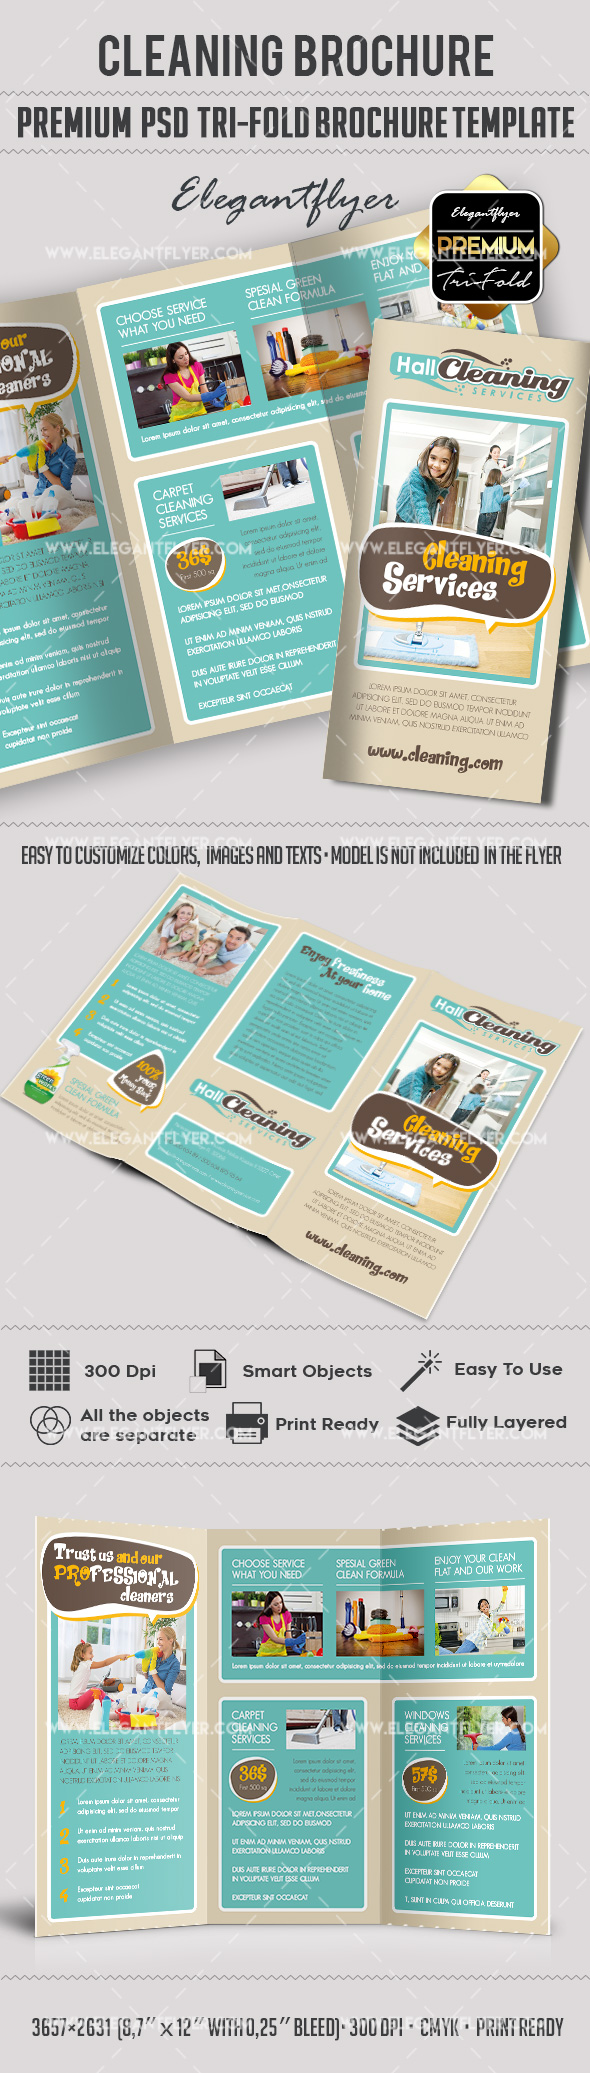 Psd brochure for cleaning services by elegantflyer for It services brochure template